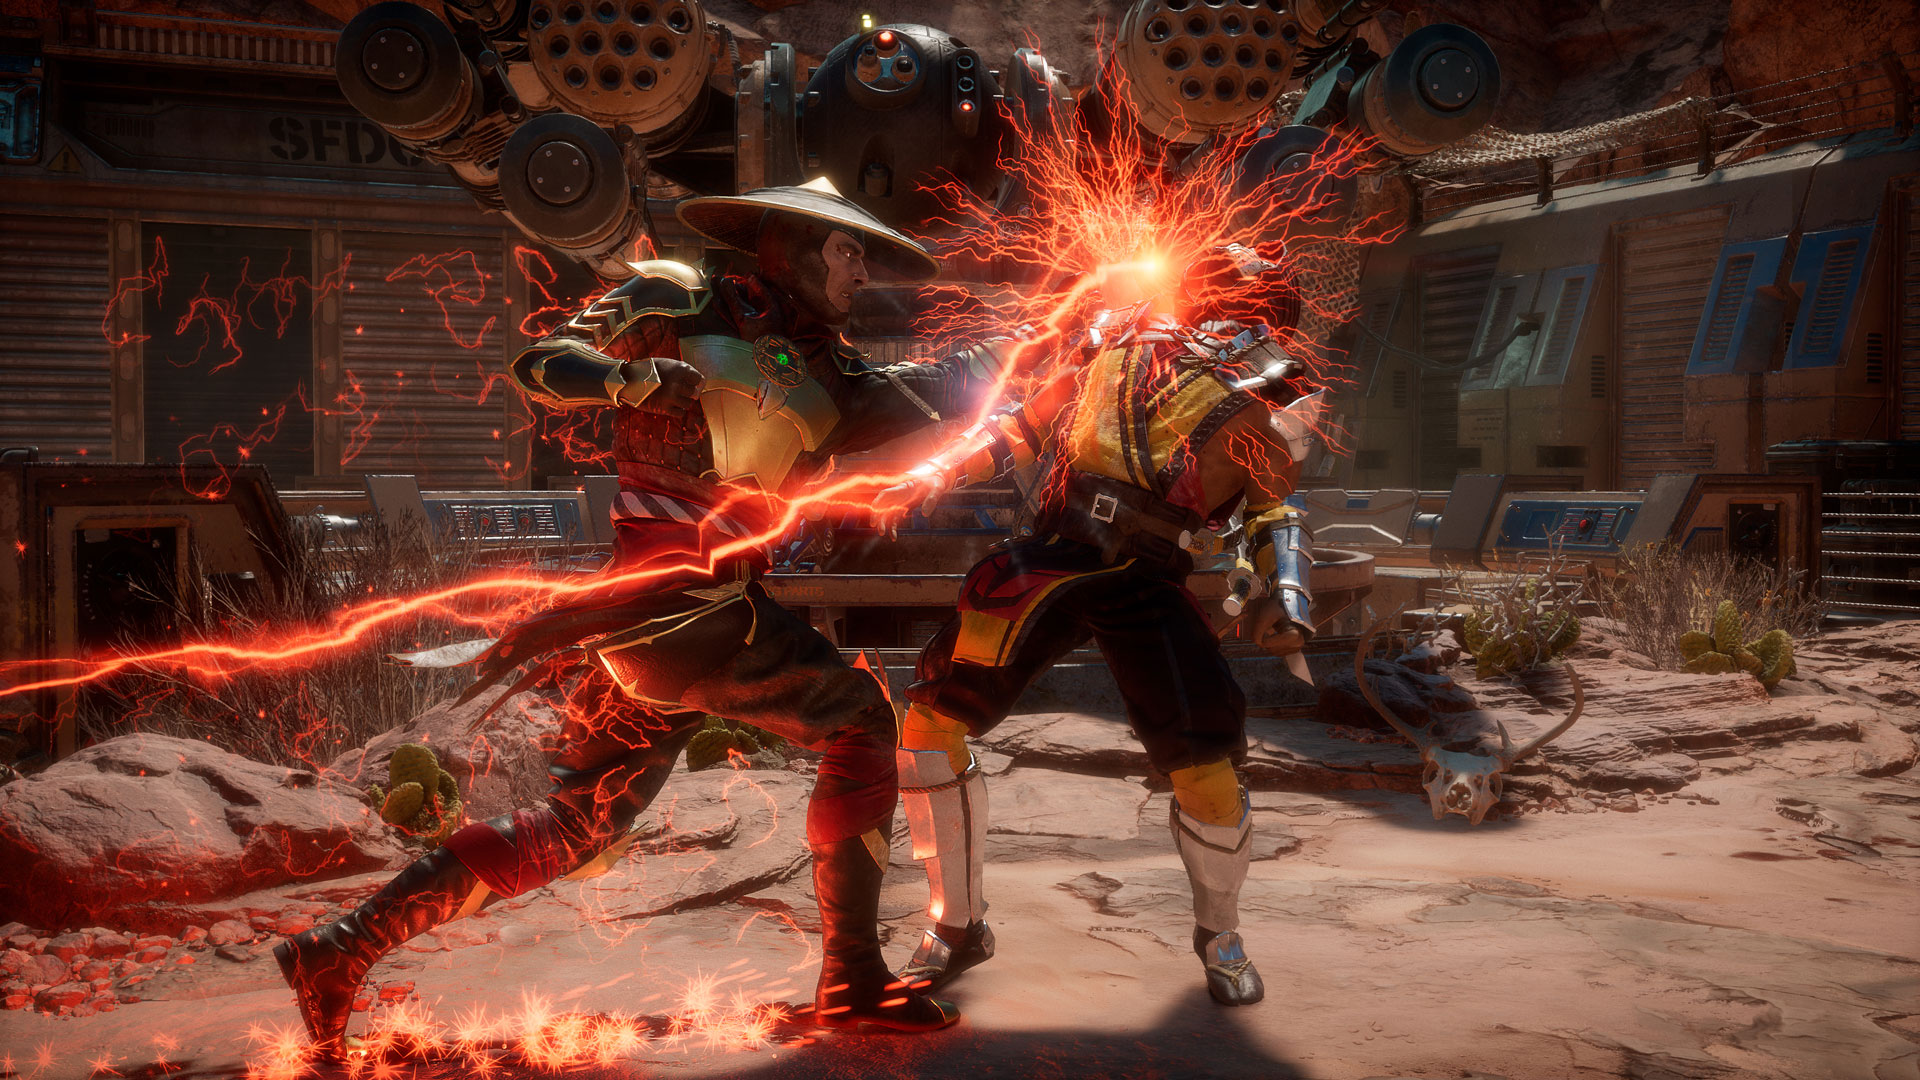 Mortal Kombat 11 is a brilliant evolution for the series